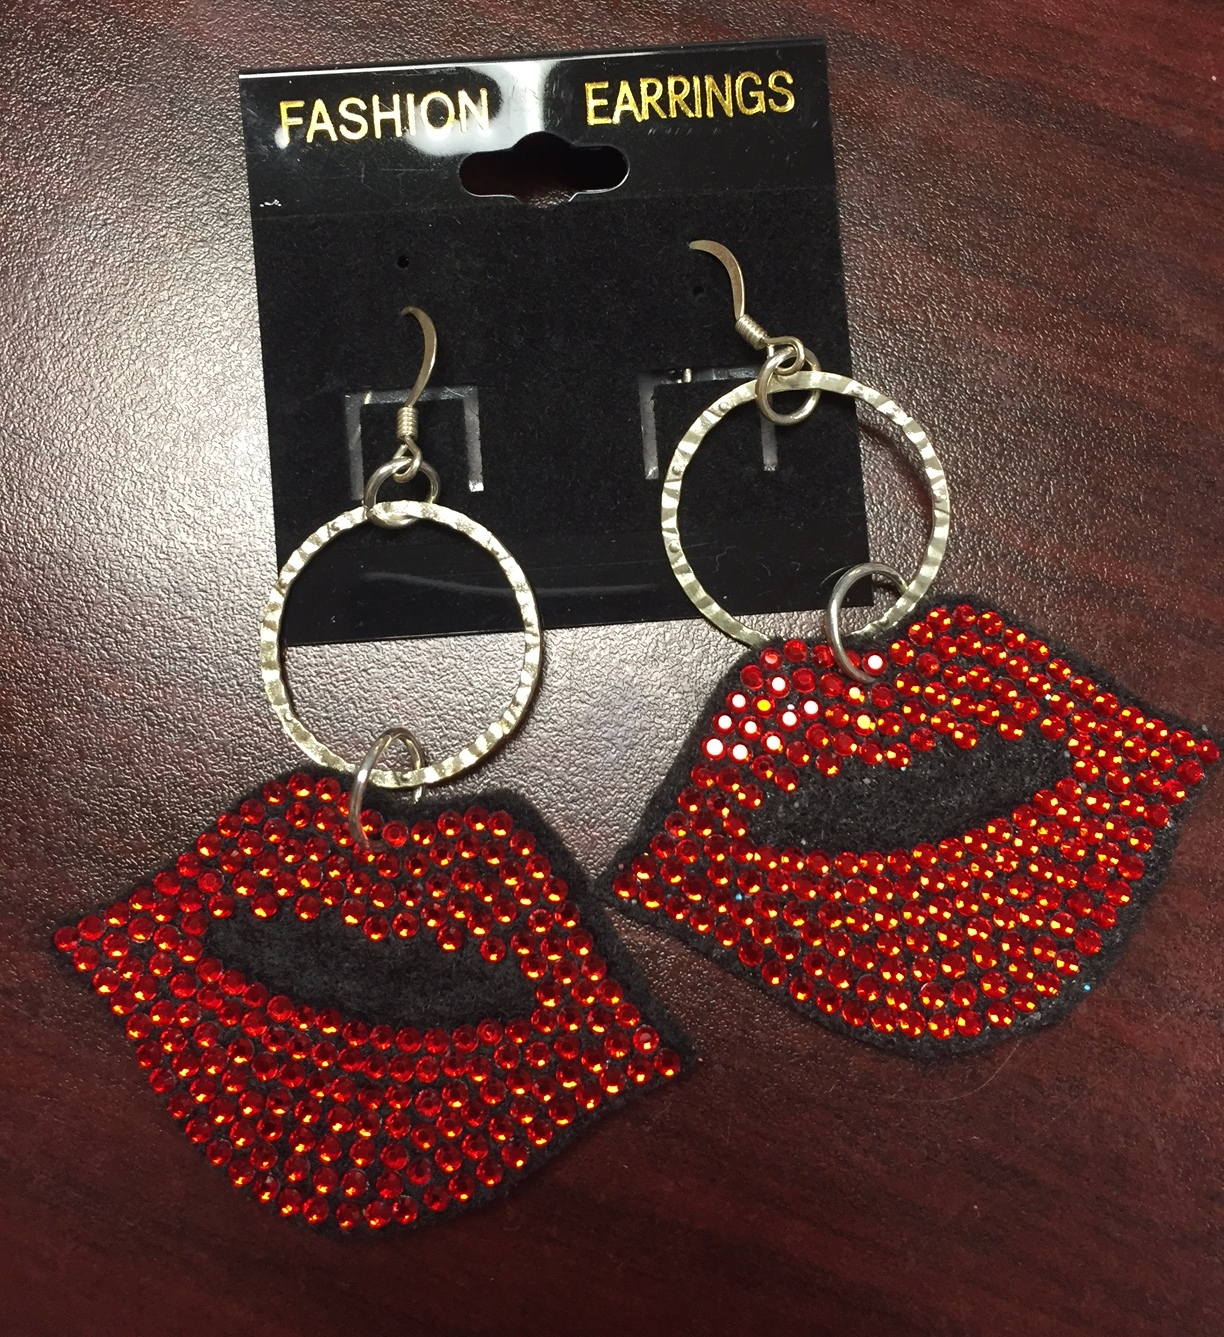 Lips Rhinestone Earrings - SMALL - CLEARANCE